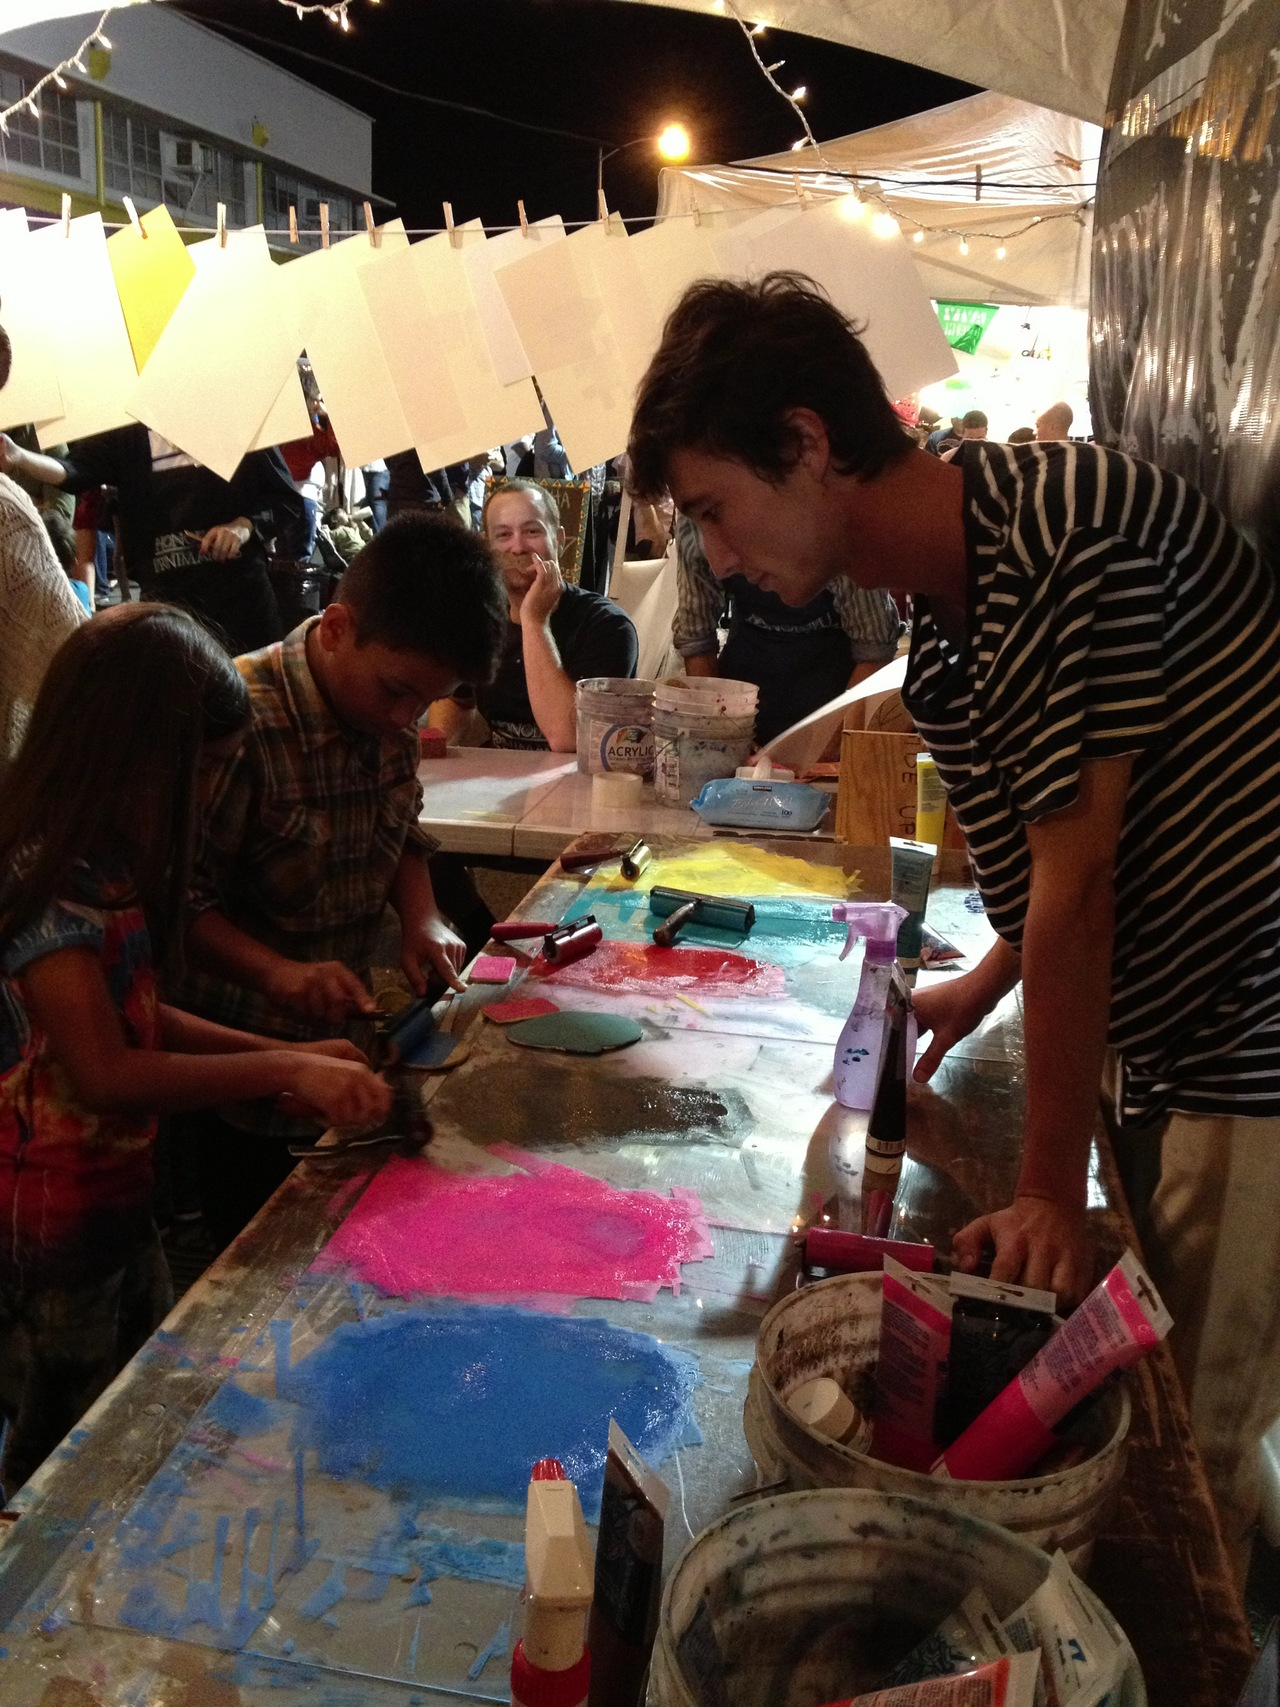 Joseph Nam, UH Manoa Printmaking student, presides over the ink slabs at a joint UH/HP relief print demo at Honolulu Night Market on 3/16/13.